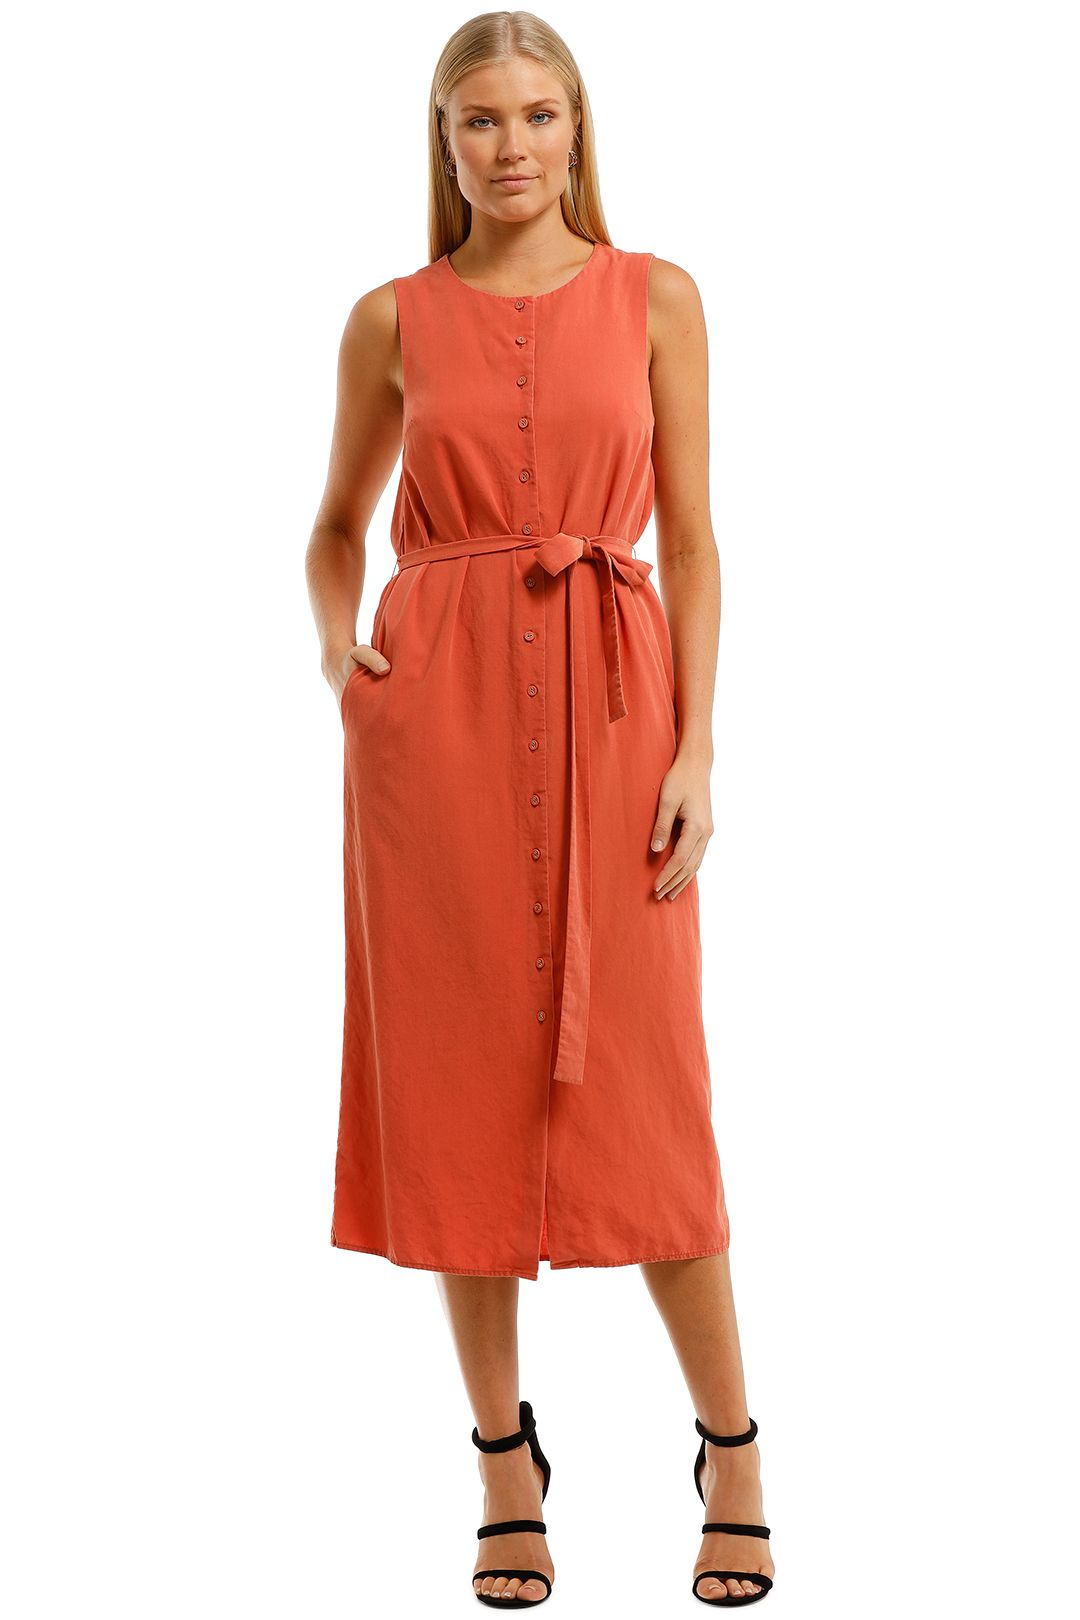 Saints-The-Label-Ardern-Dress-Rust-Front